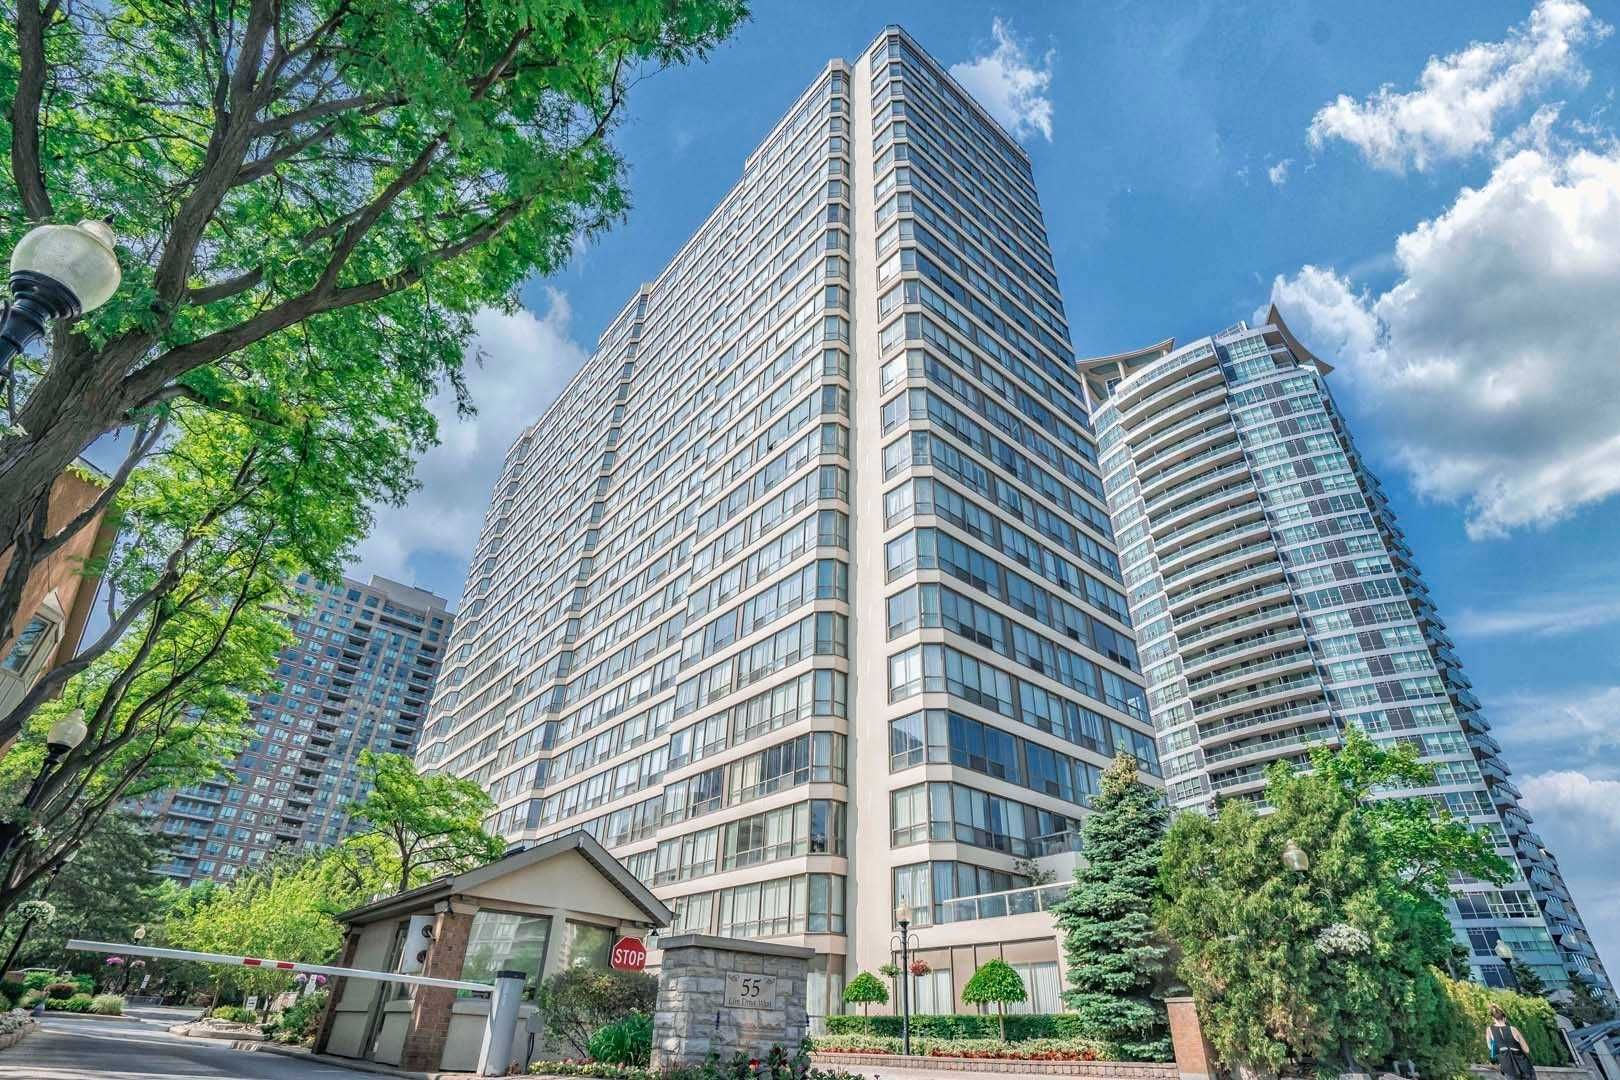 55 Elm Dr W, unit Ph9 for sale in Toronto - image #2